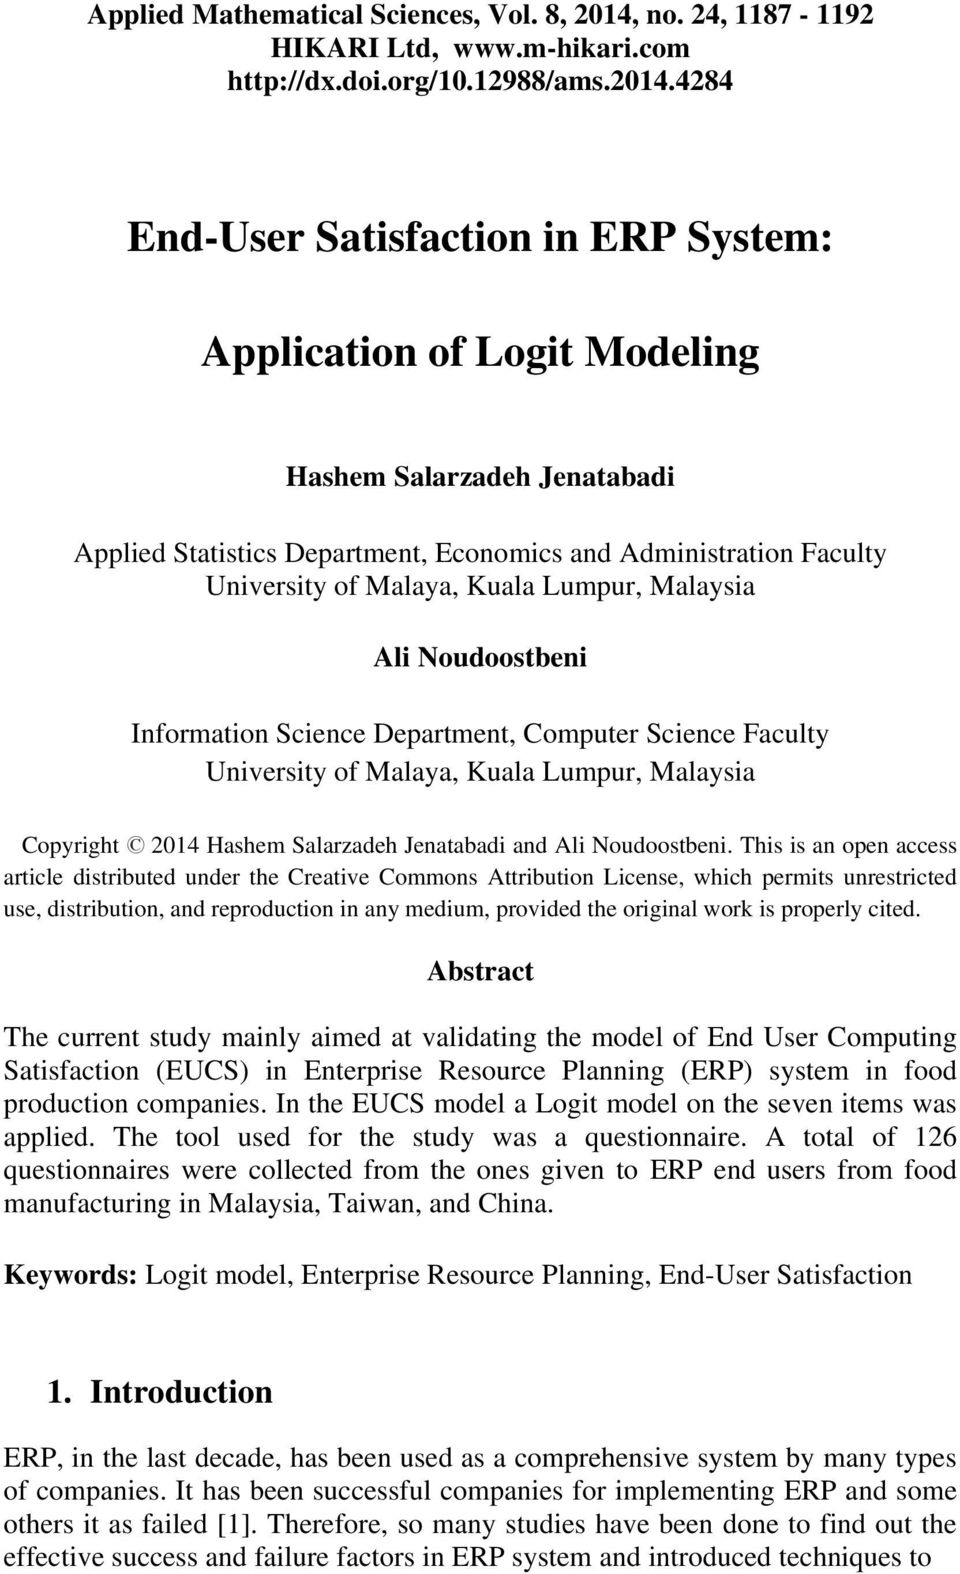 4284 End-User Satisfaction in ERP System: Application of Logit Modeling Hashem Salarzadeh Jenatabadi Applied Statistics Department, Economics and Administration Faculty University of Malaya, Kuala